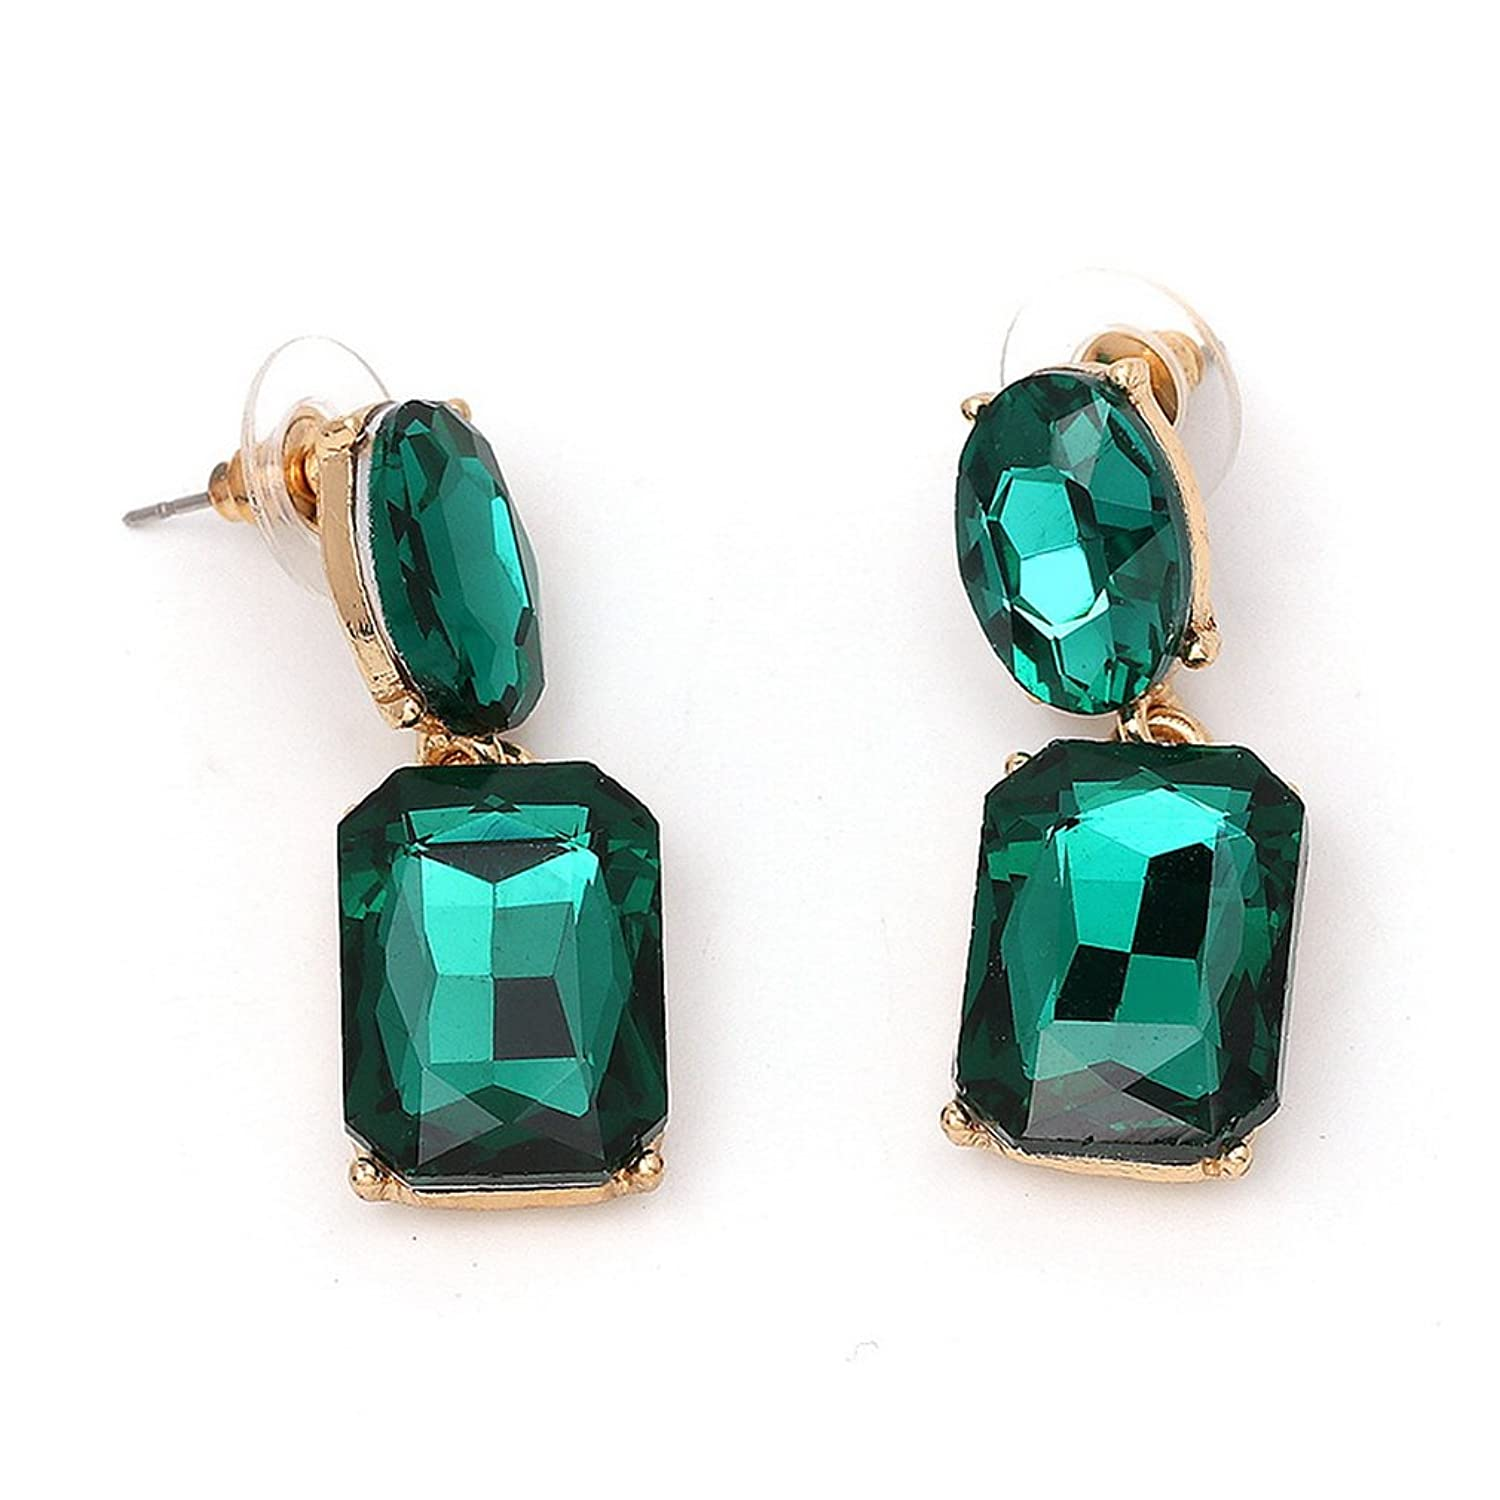 YAZILIND Green Emerald Cut Gold Plated Cubic Zirconia Stud Earrings for Women Wedding Party Gift wHFET0